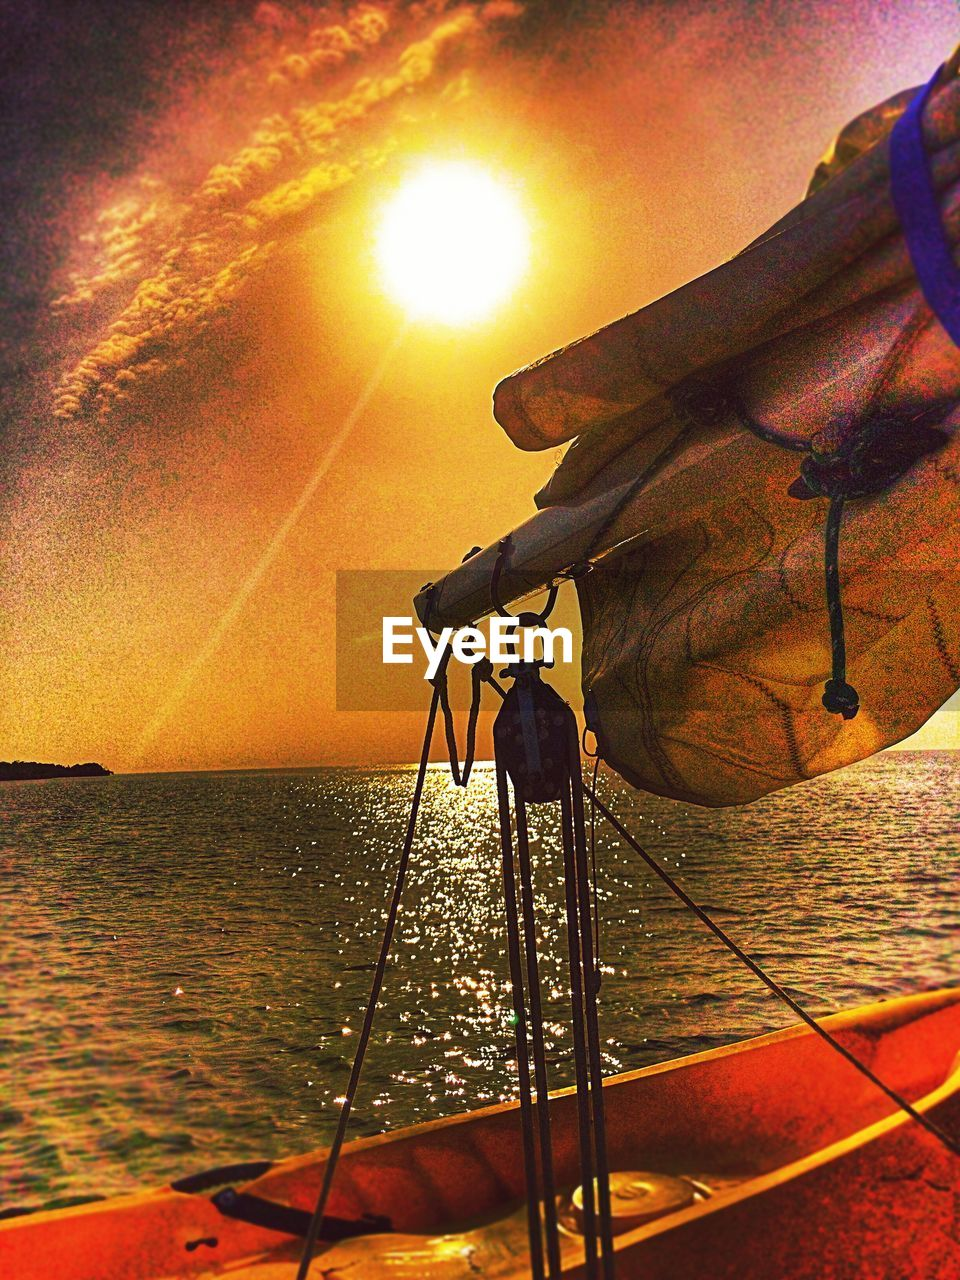 sea, sunset, water, sun, nature, sunlight, orange color, beauty in nature, outdoors, sunbeam, sky, scenics, tranquility, one person, fishing pole, horizon over water, day, nautical vessel, close-up, people